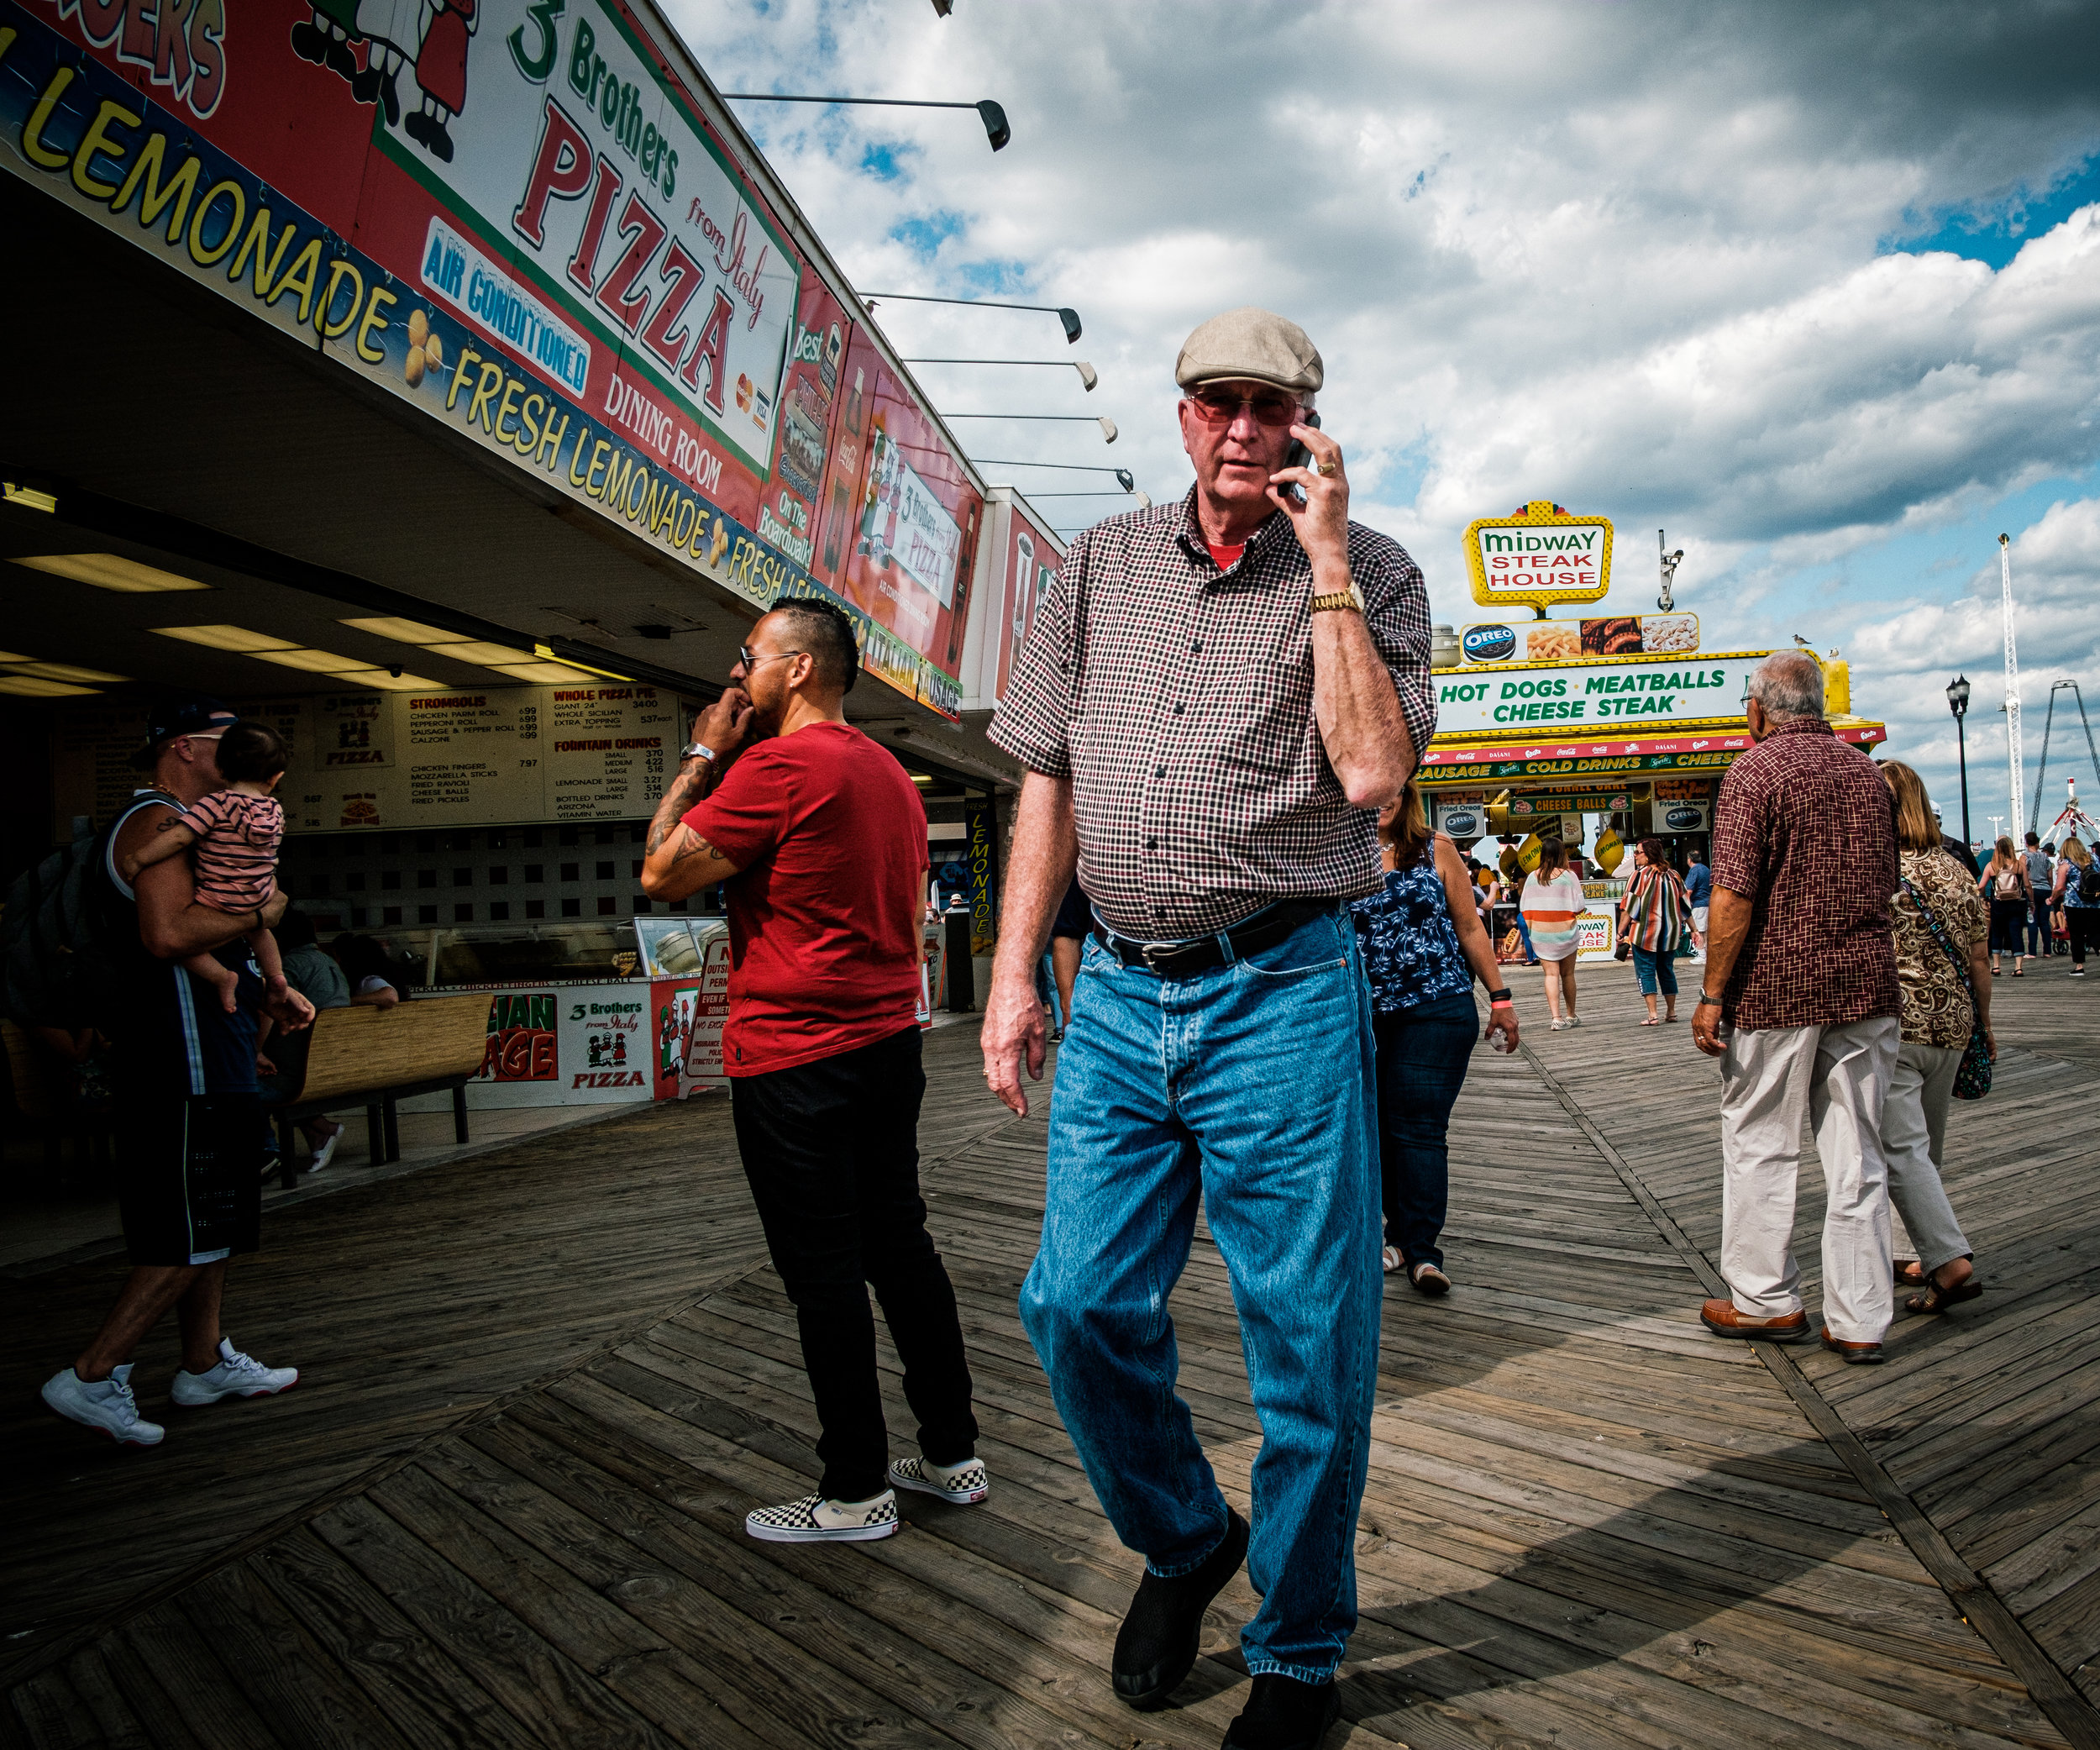 Seaside Boardwalk NJ, XT3 / 18mm f.8